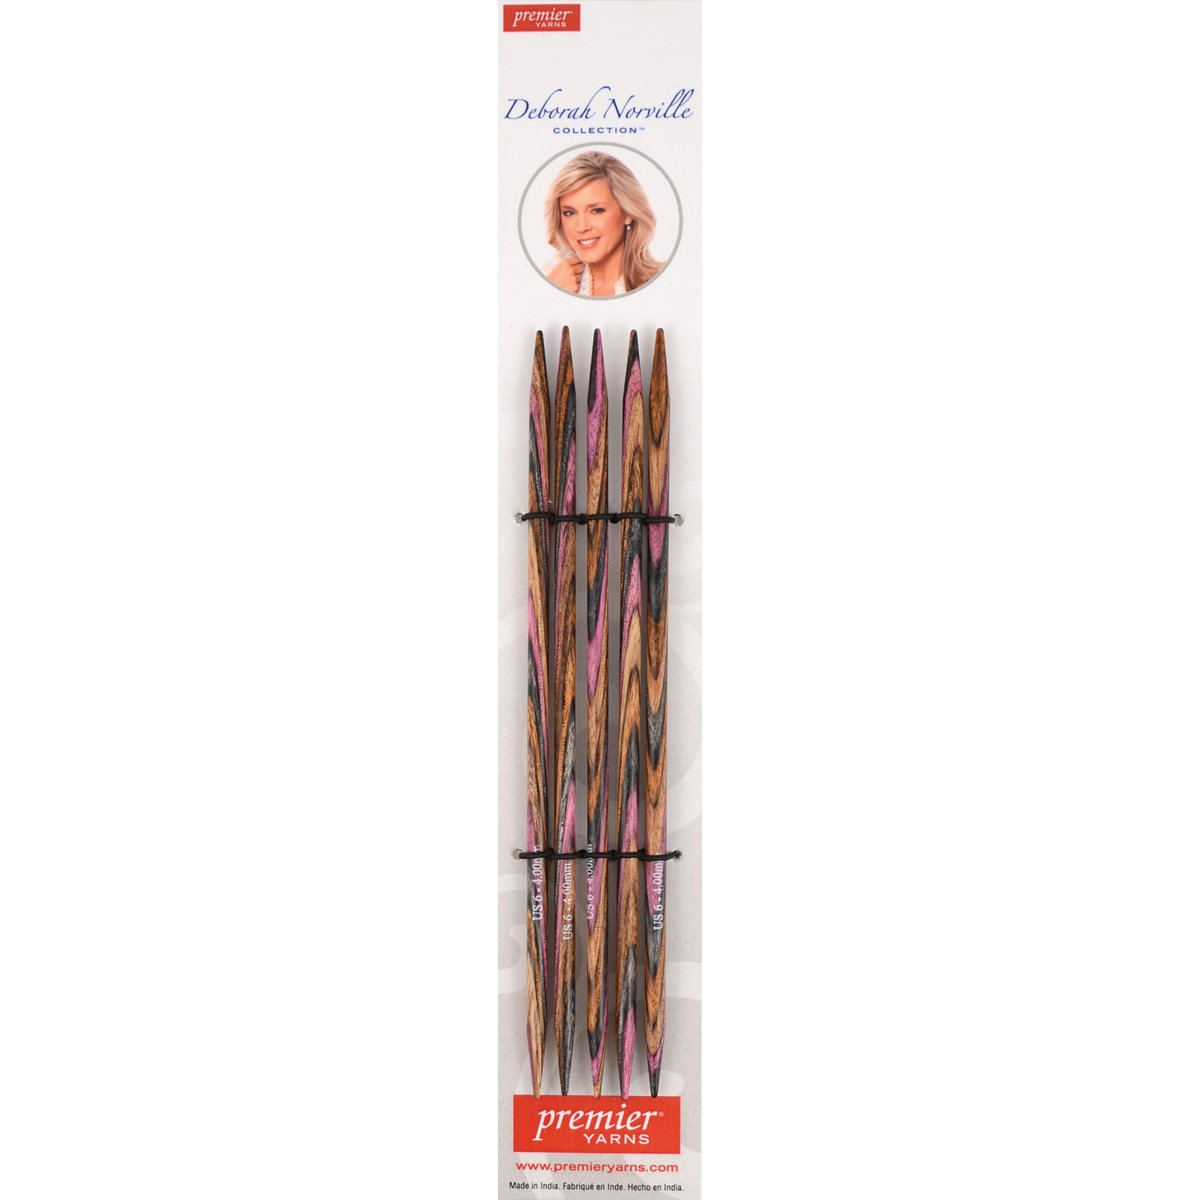 Premier Yarns Deborah Norville Double Pointed Needles, 6-Inch, 7/4.5mm DNN80-8